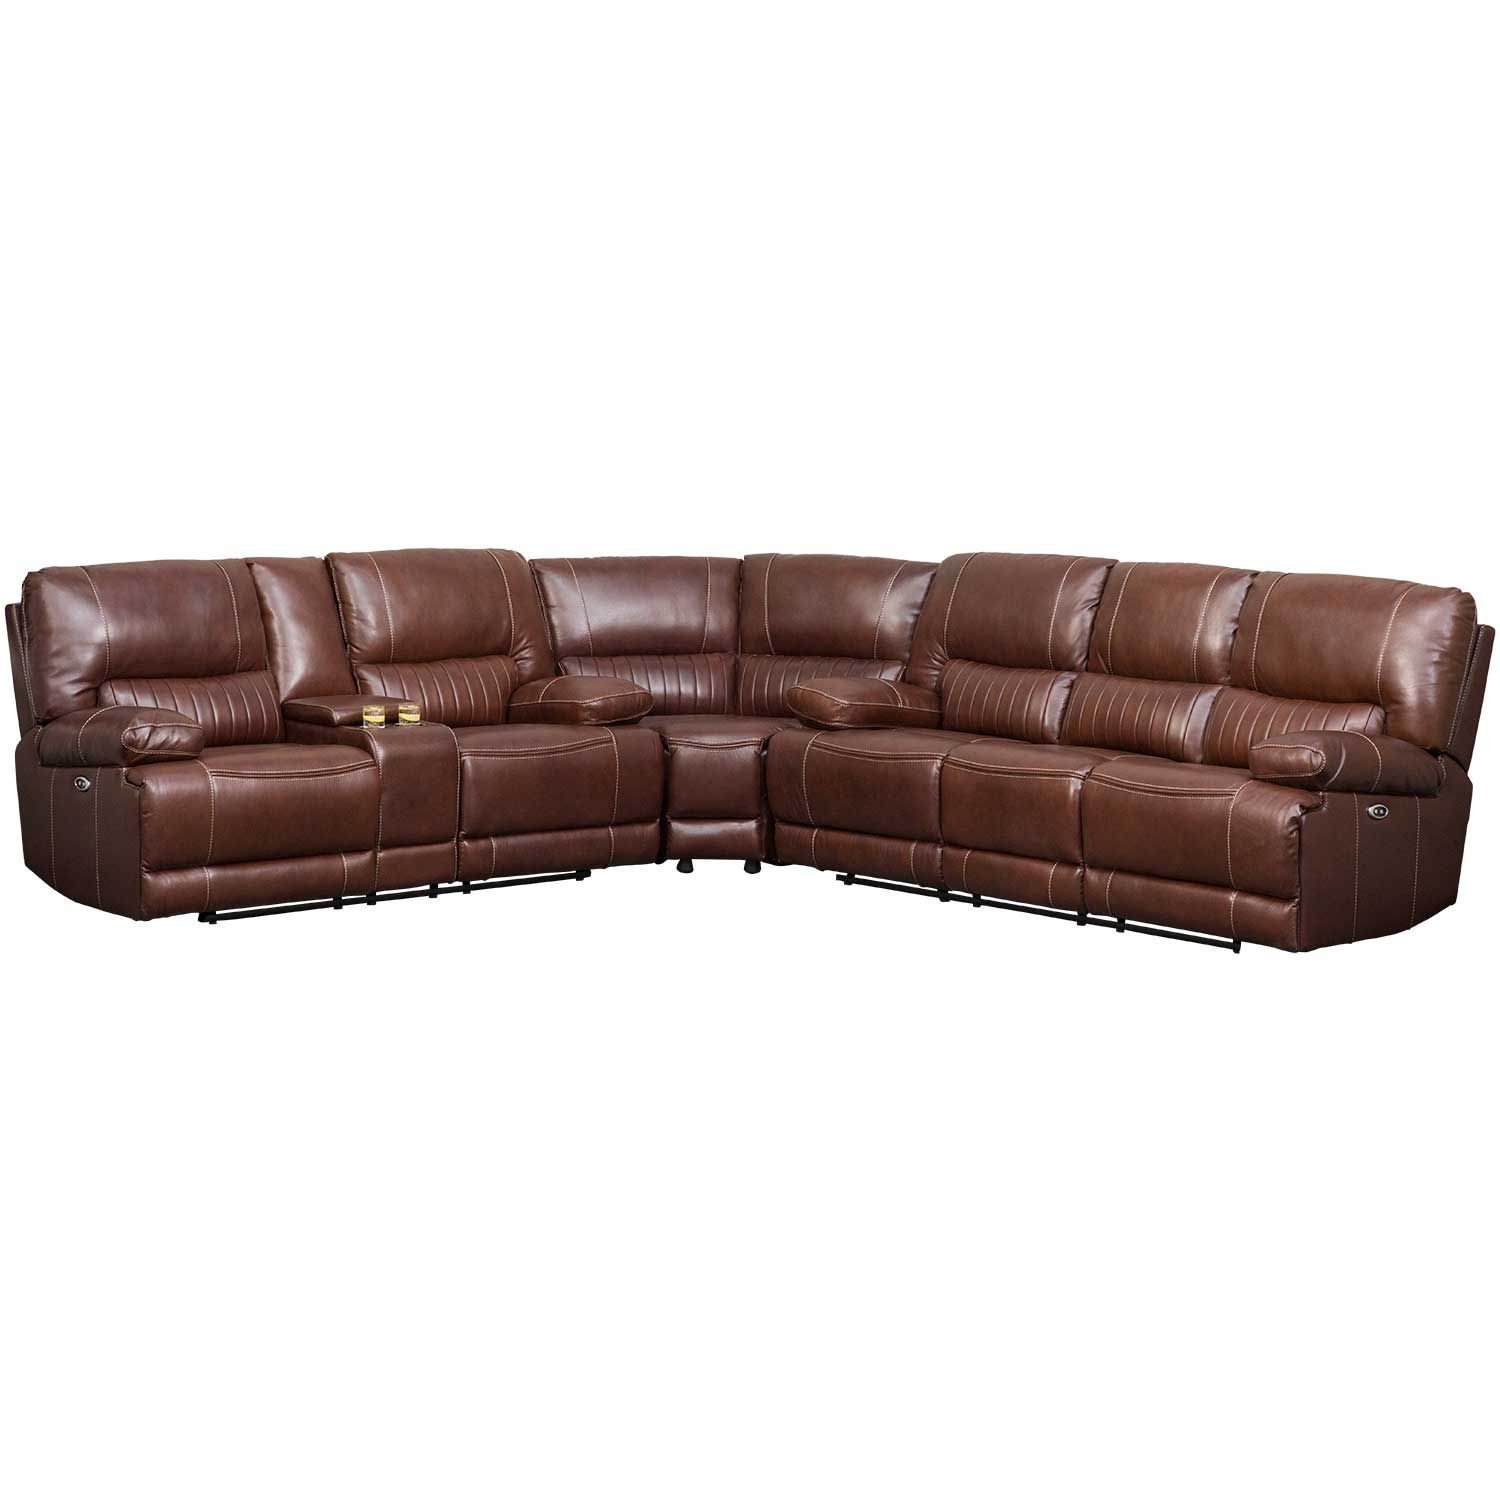 Picture of 3PC Brown Leather Reclining Sectional